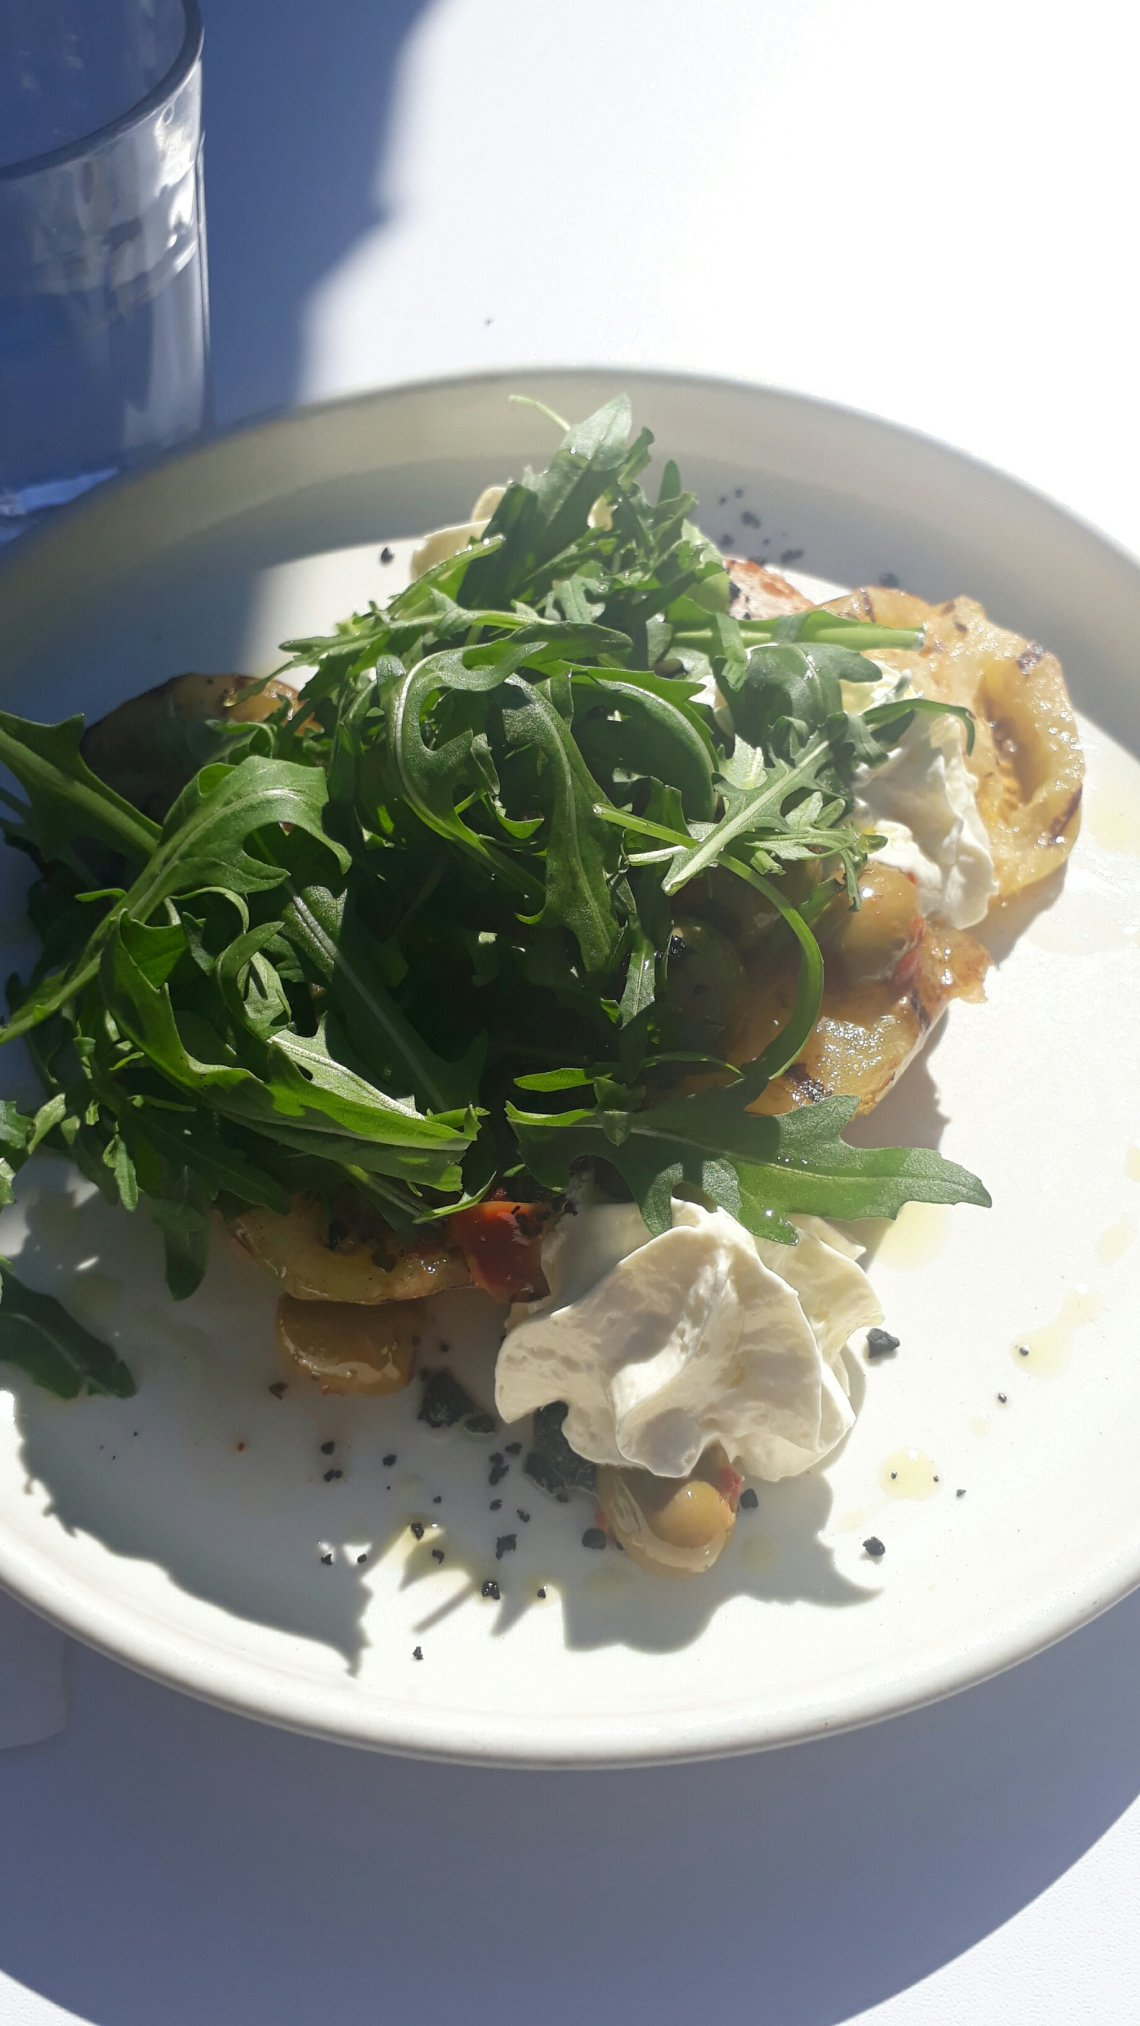 Fried green tomatoes goats cheese and herbs from Cornwall Park Bistro